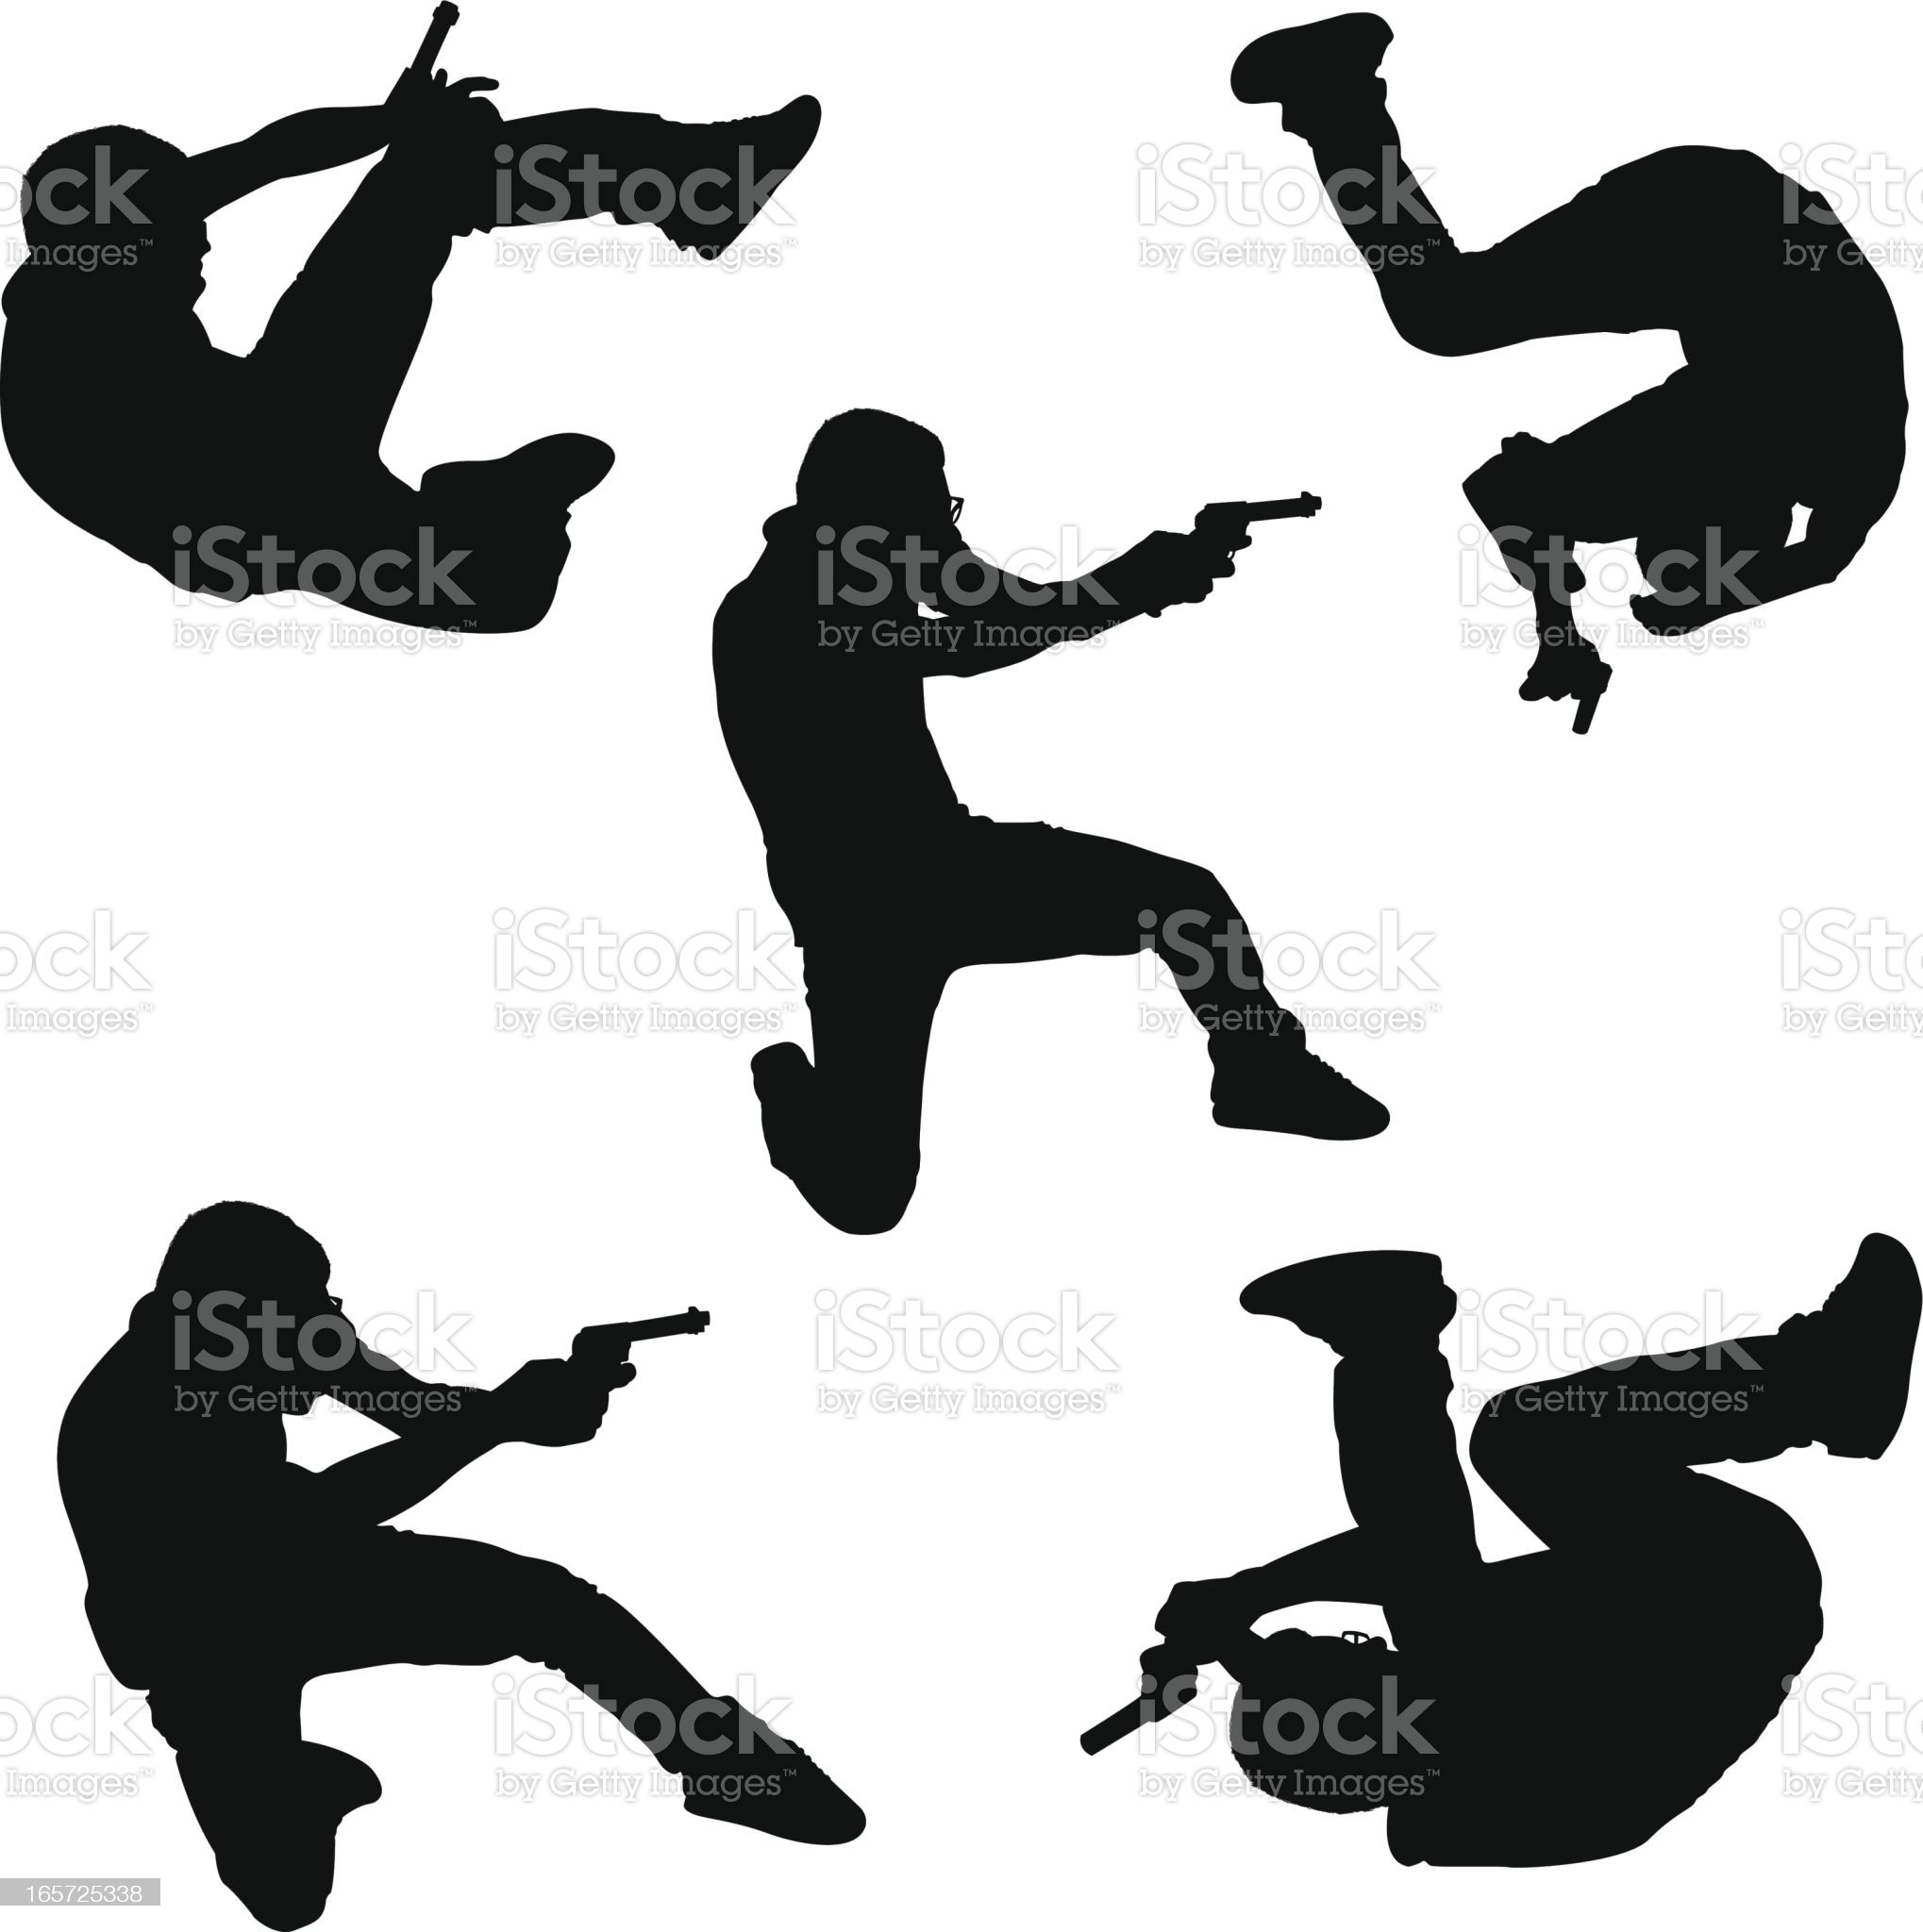 Action heroes with handguns royalty-free stock vector art